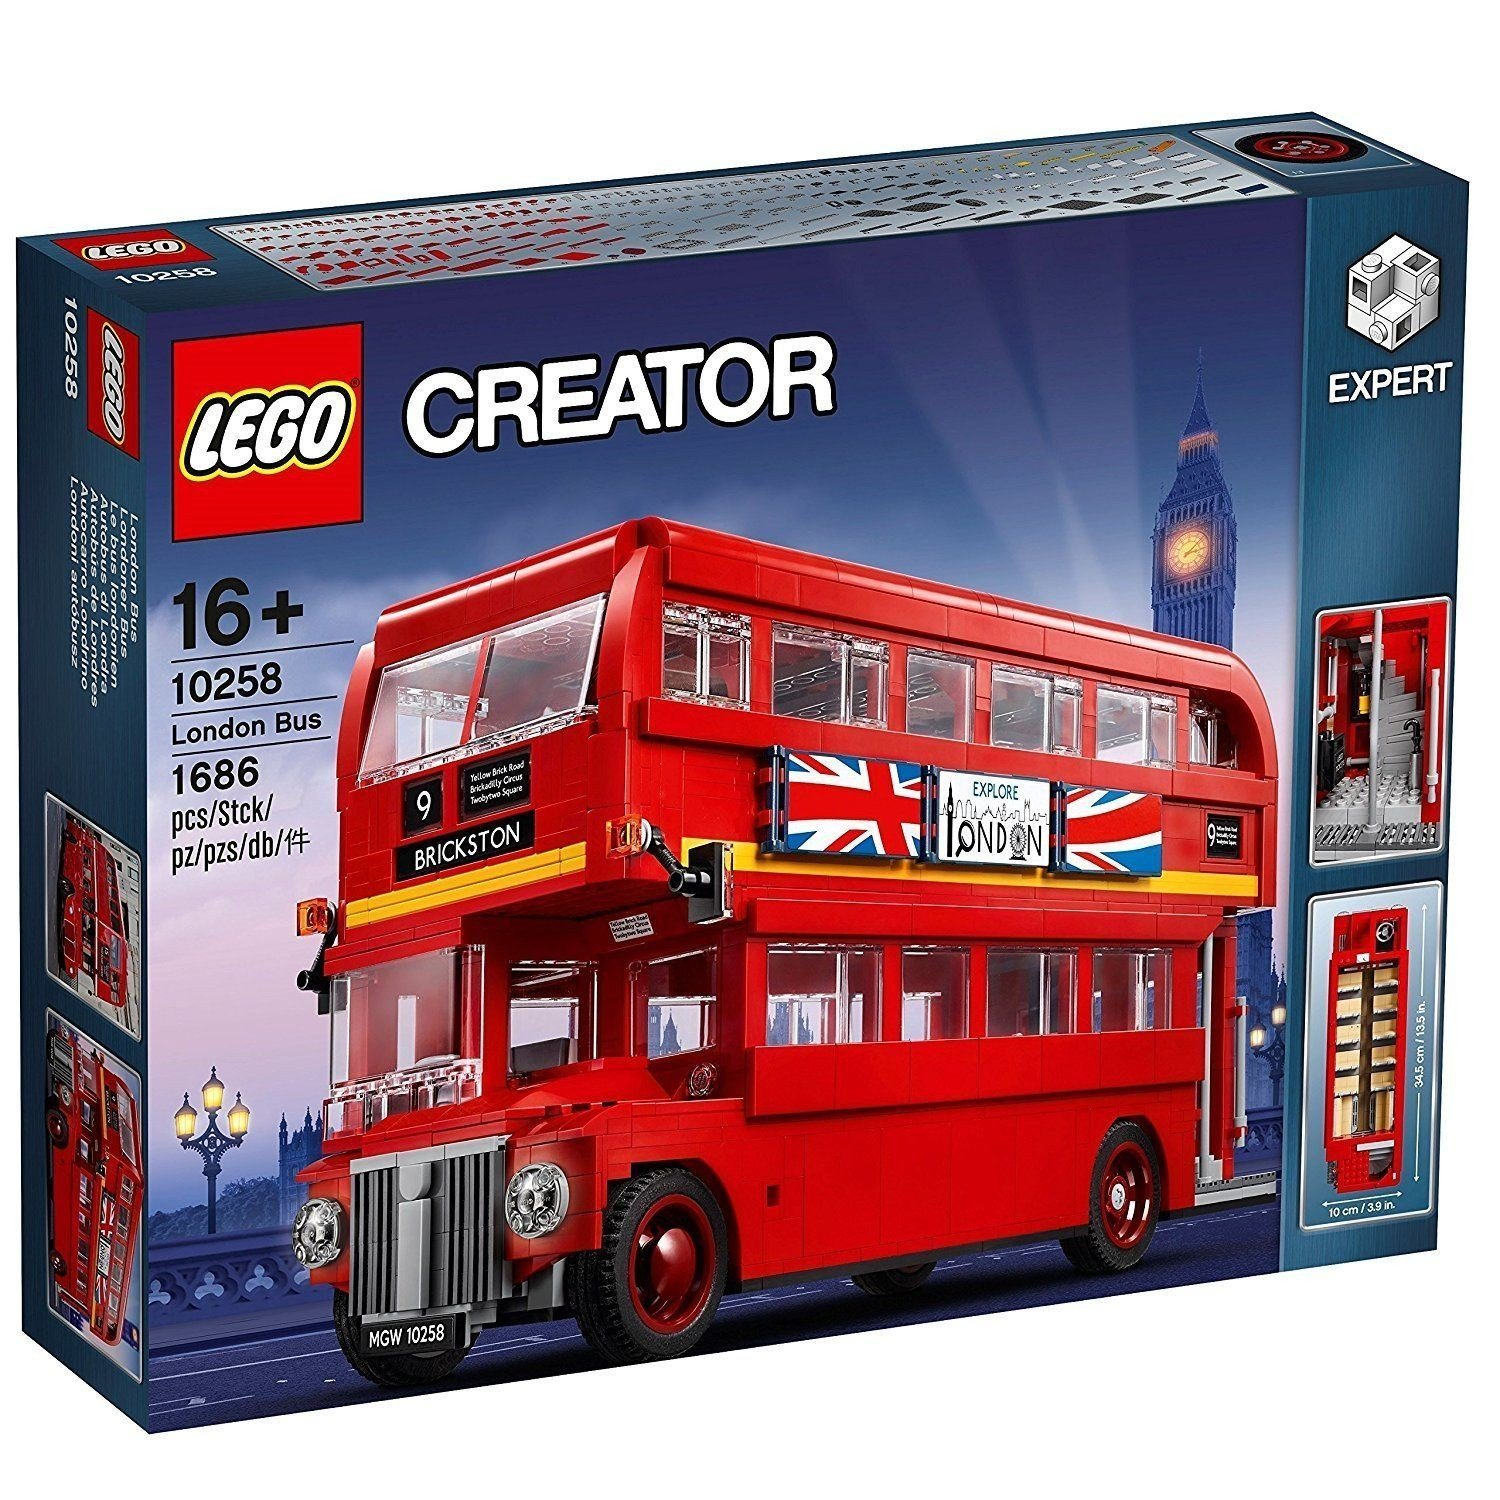 10258 LEGO® Creator Expert, London Bus